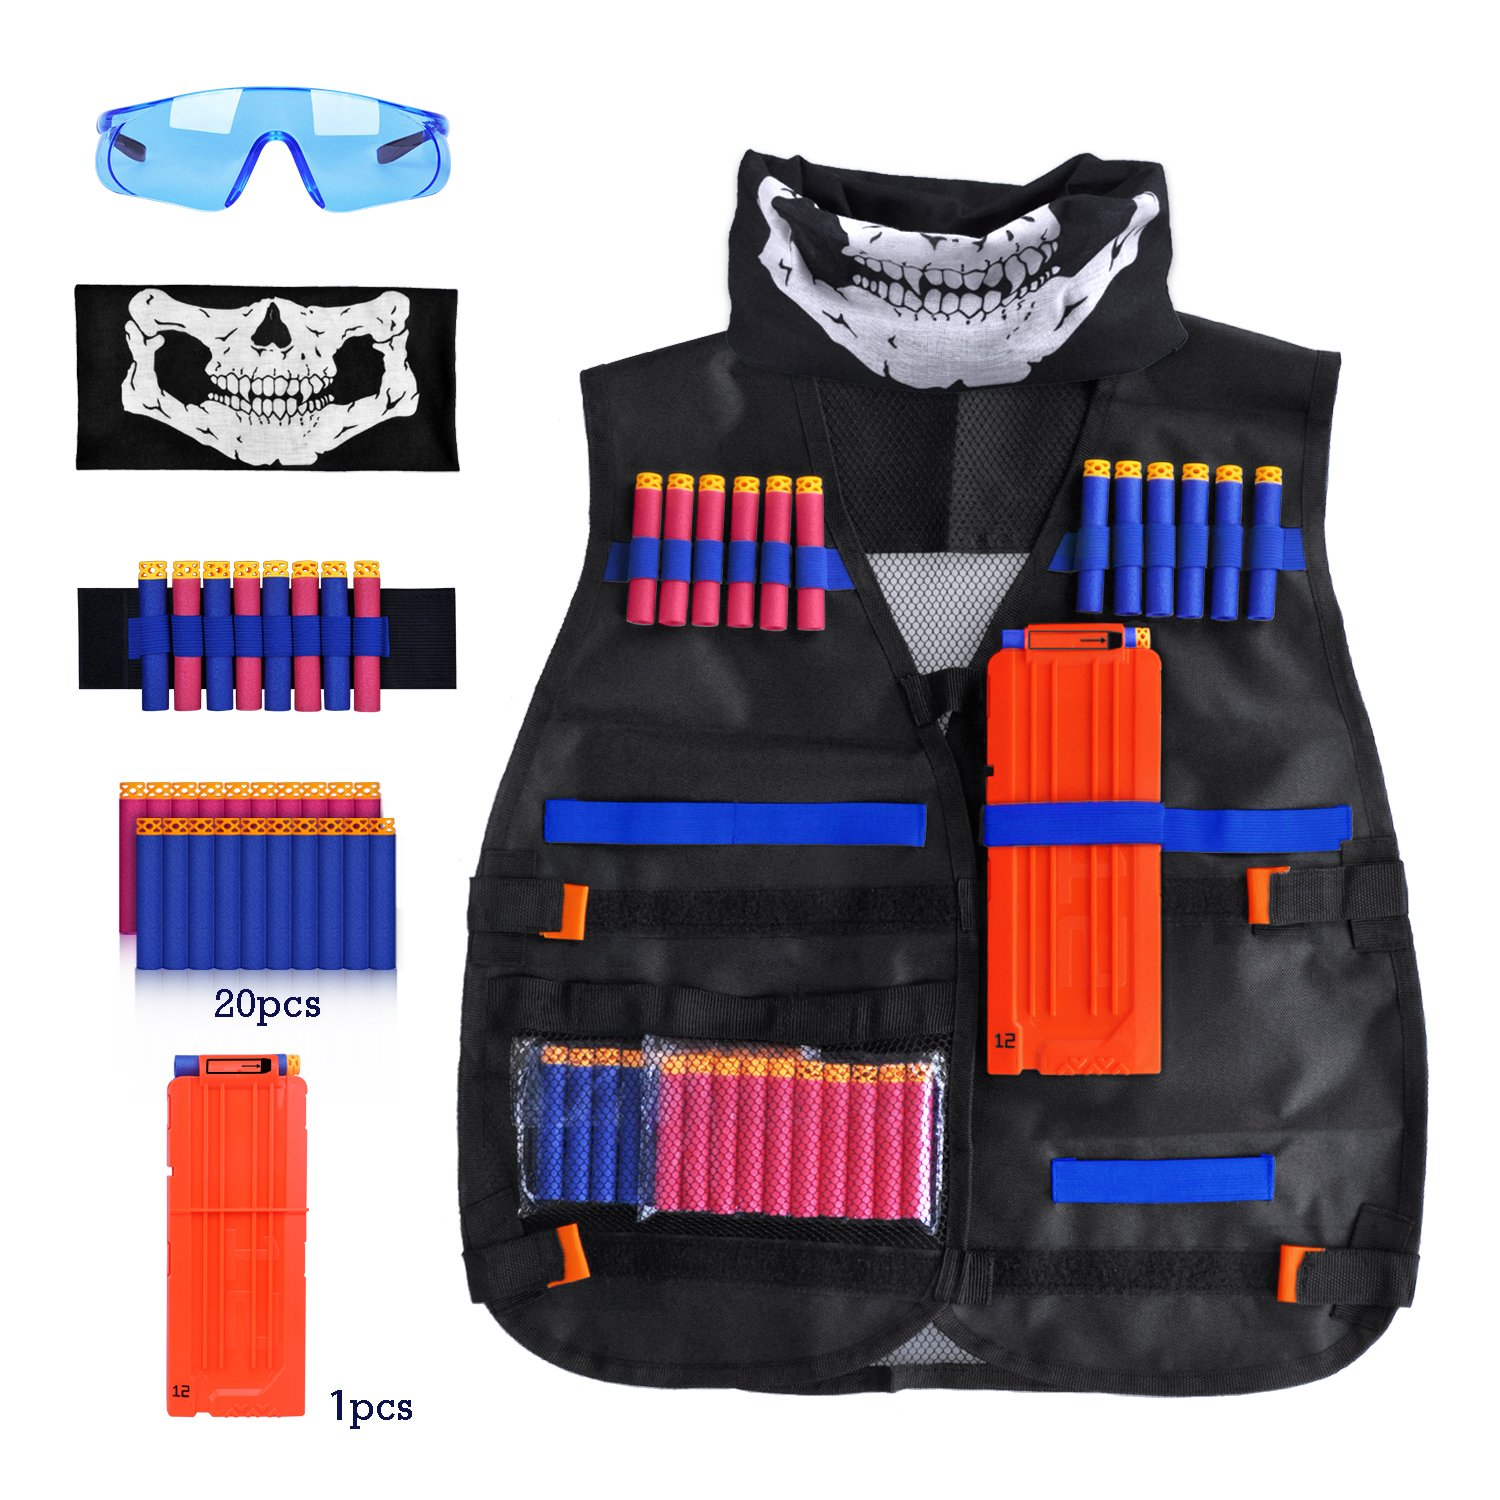 Kids Tactical Vest Kit Compatible with Nerf Guns N-Strike Elite Series, with 20 Pcs Refill Darts, 1 Reload Clips, Face Tube Mask, 1 Hand Wrist Band and Protective Glasses